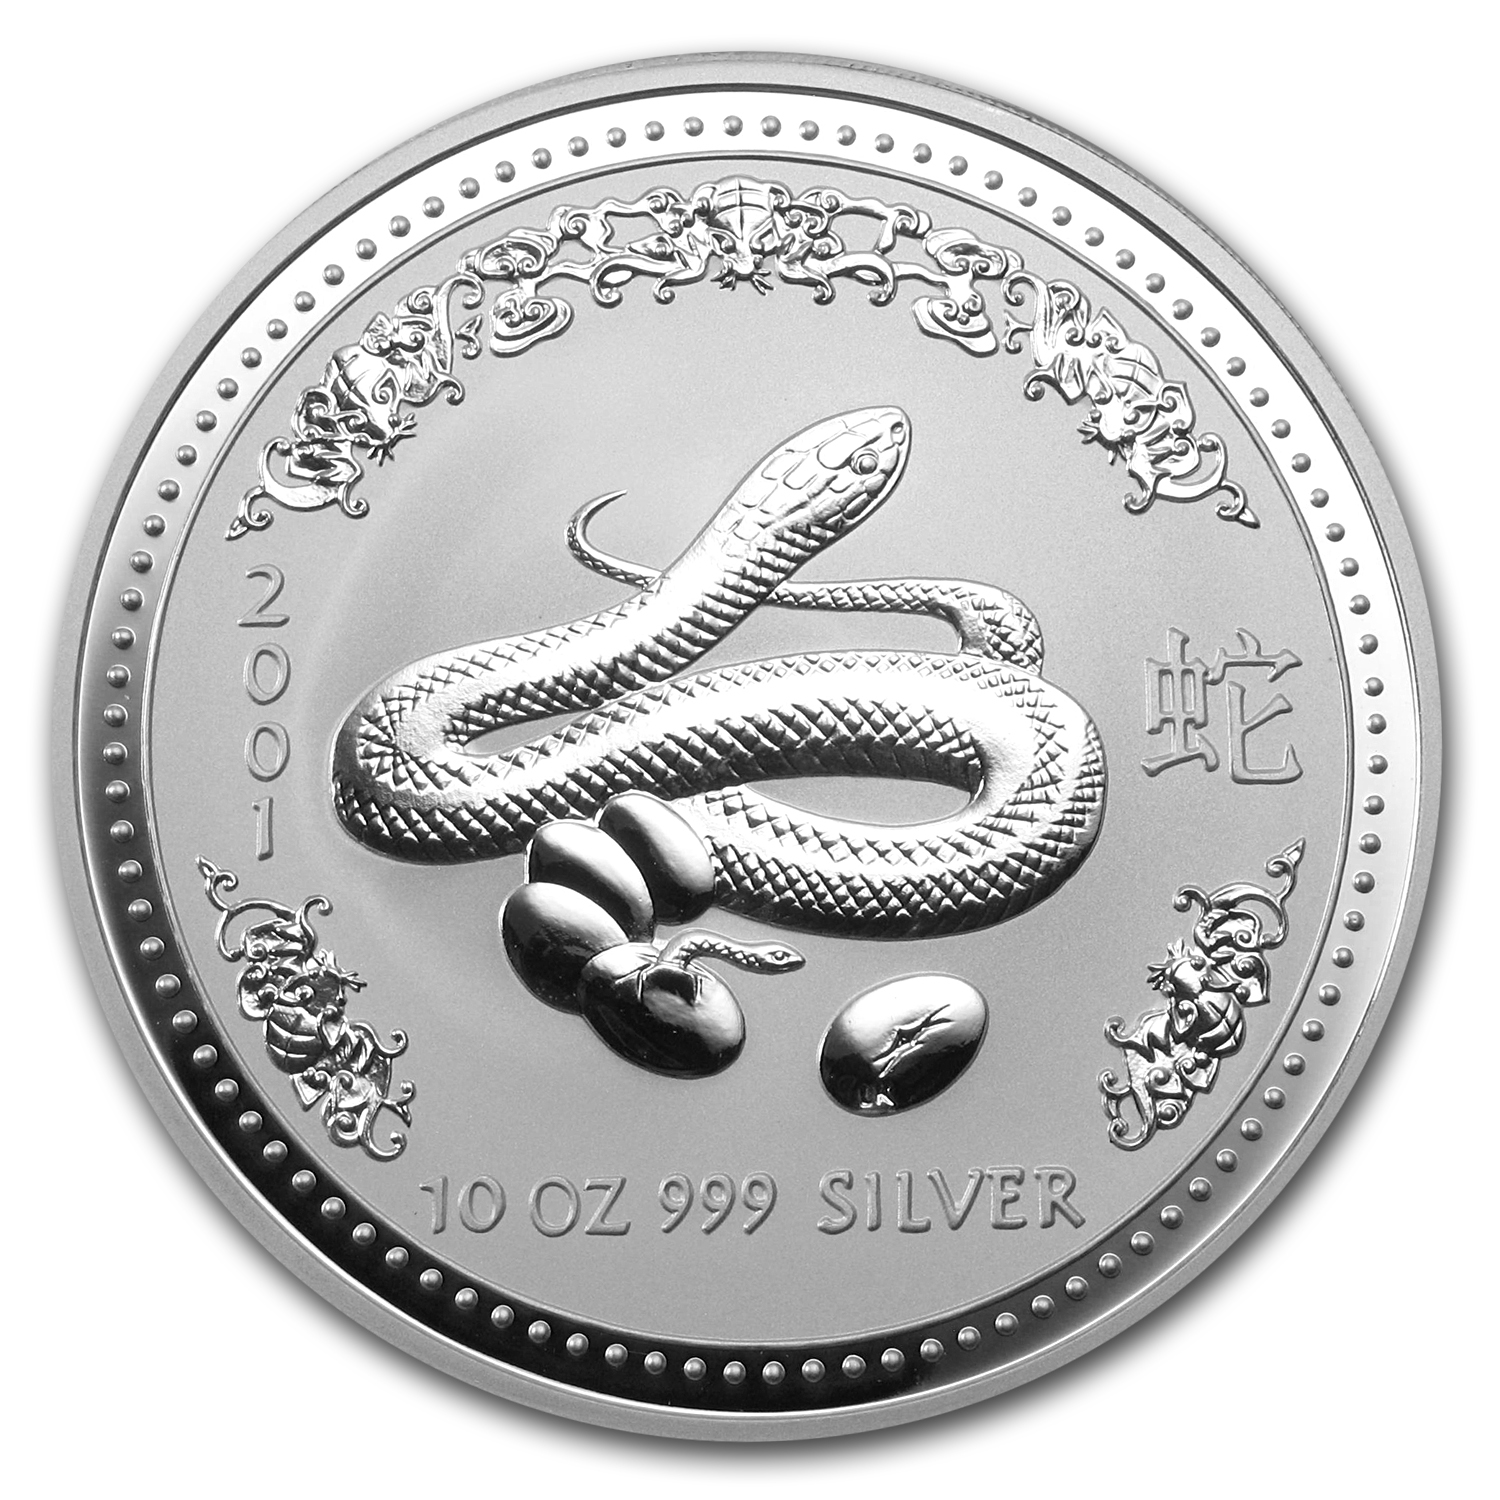 2001 Australia 10 oz Silver Year of the Snake BU